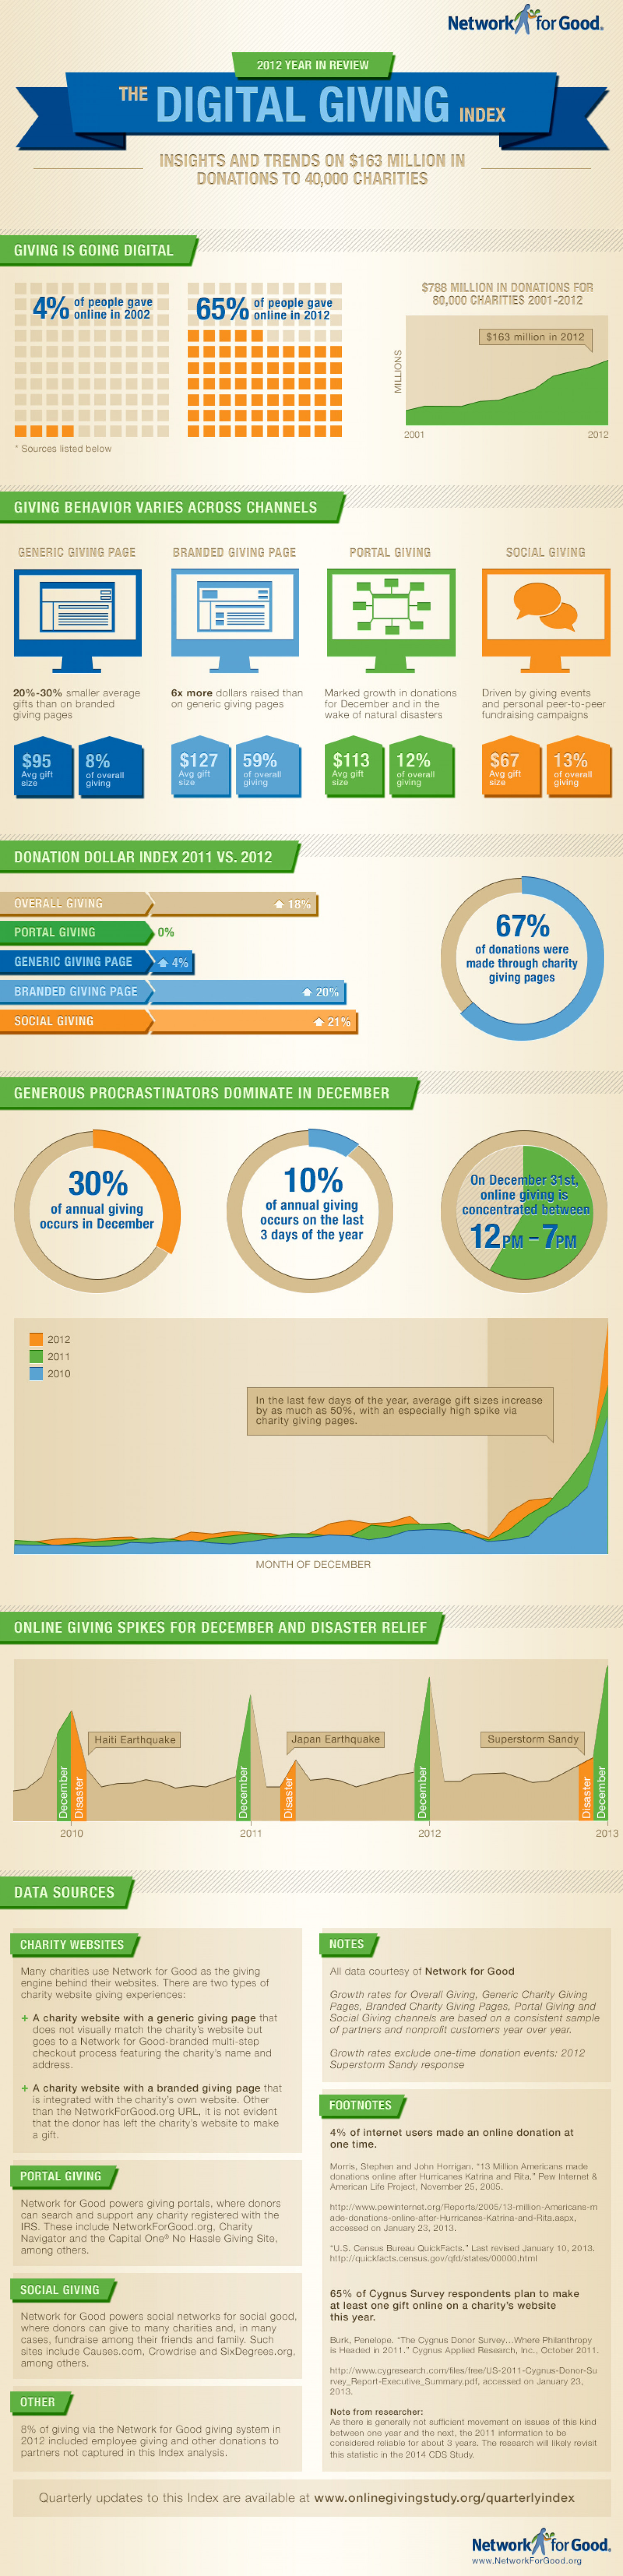 2012 Digital Giving Index Infographic